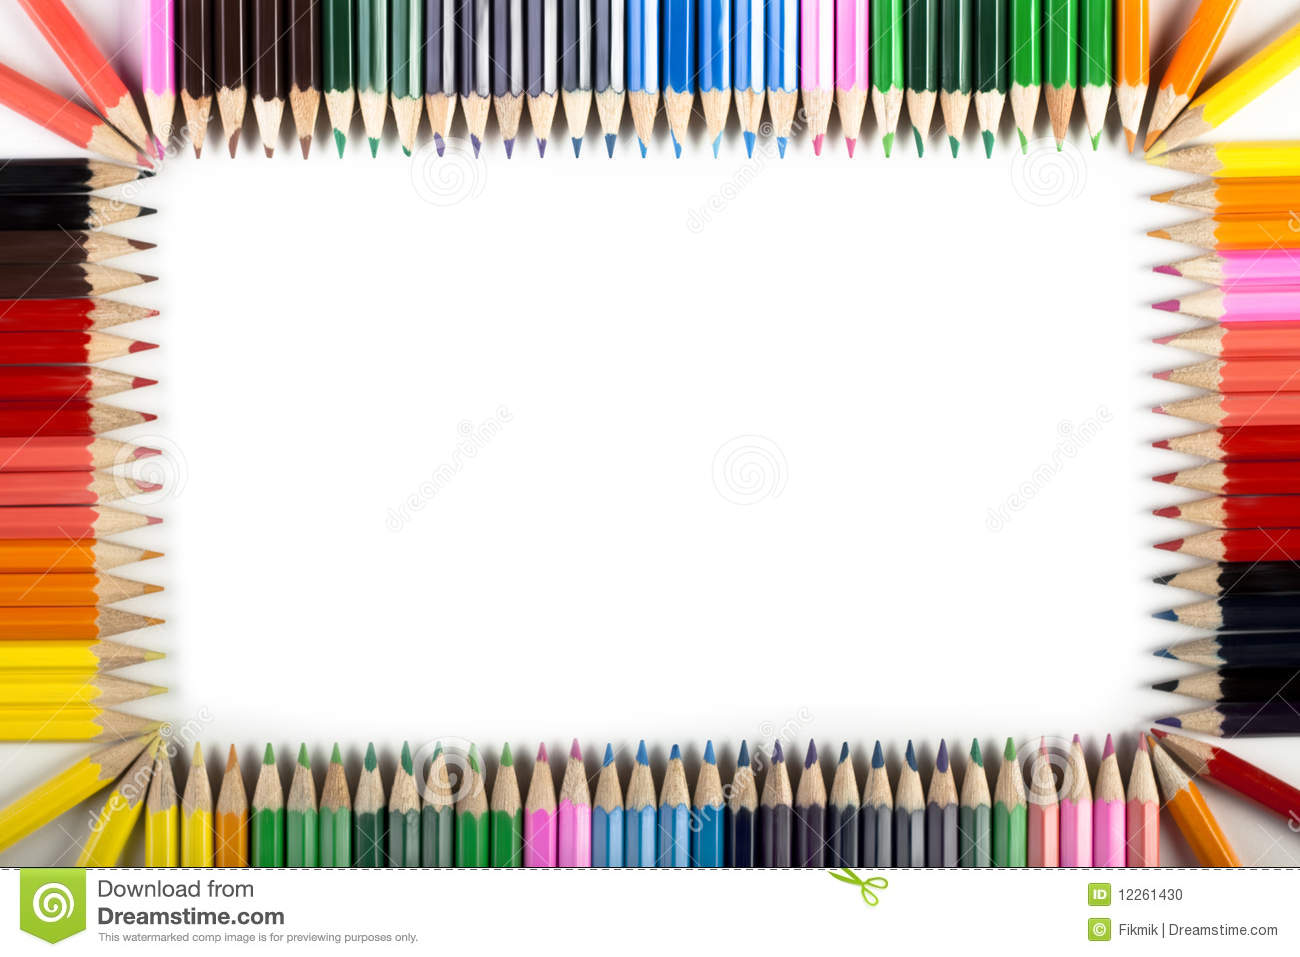 colored pencils abstract border stock illustration - image: 12261430, Powerpoint templates